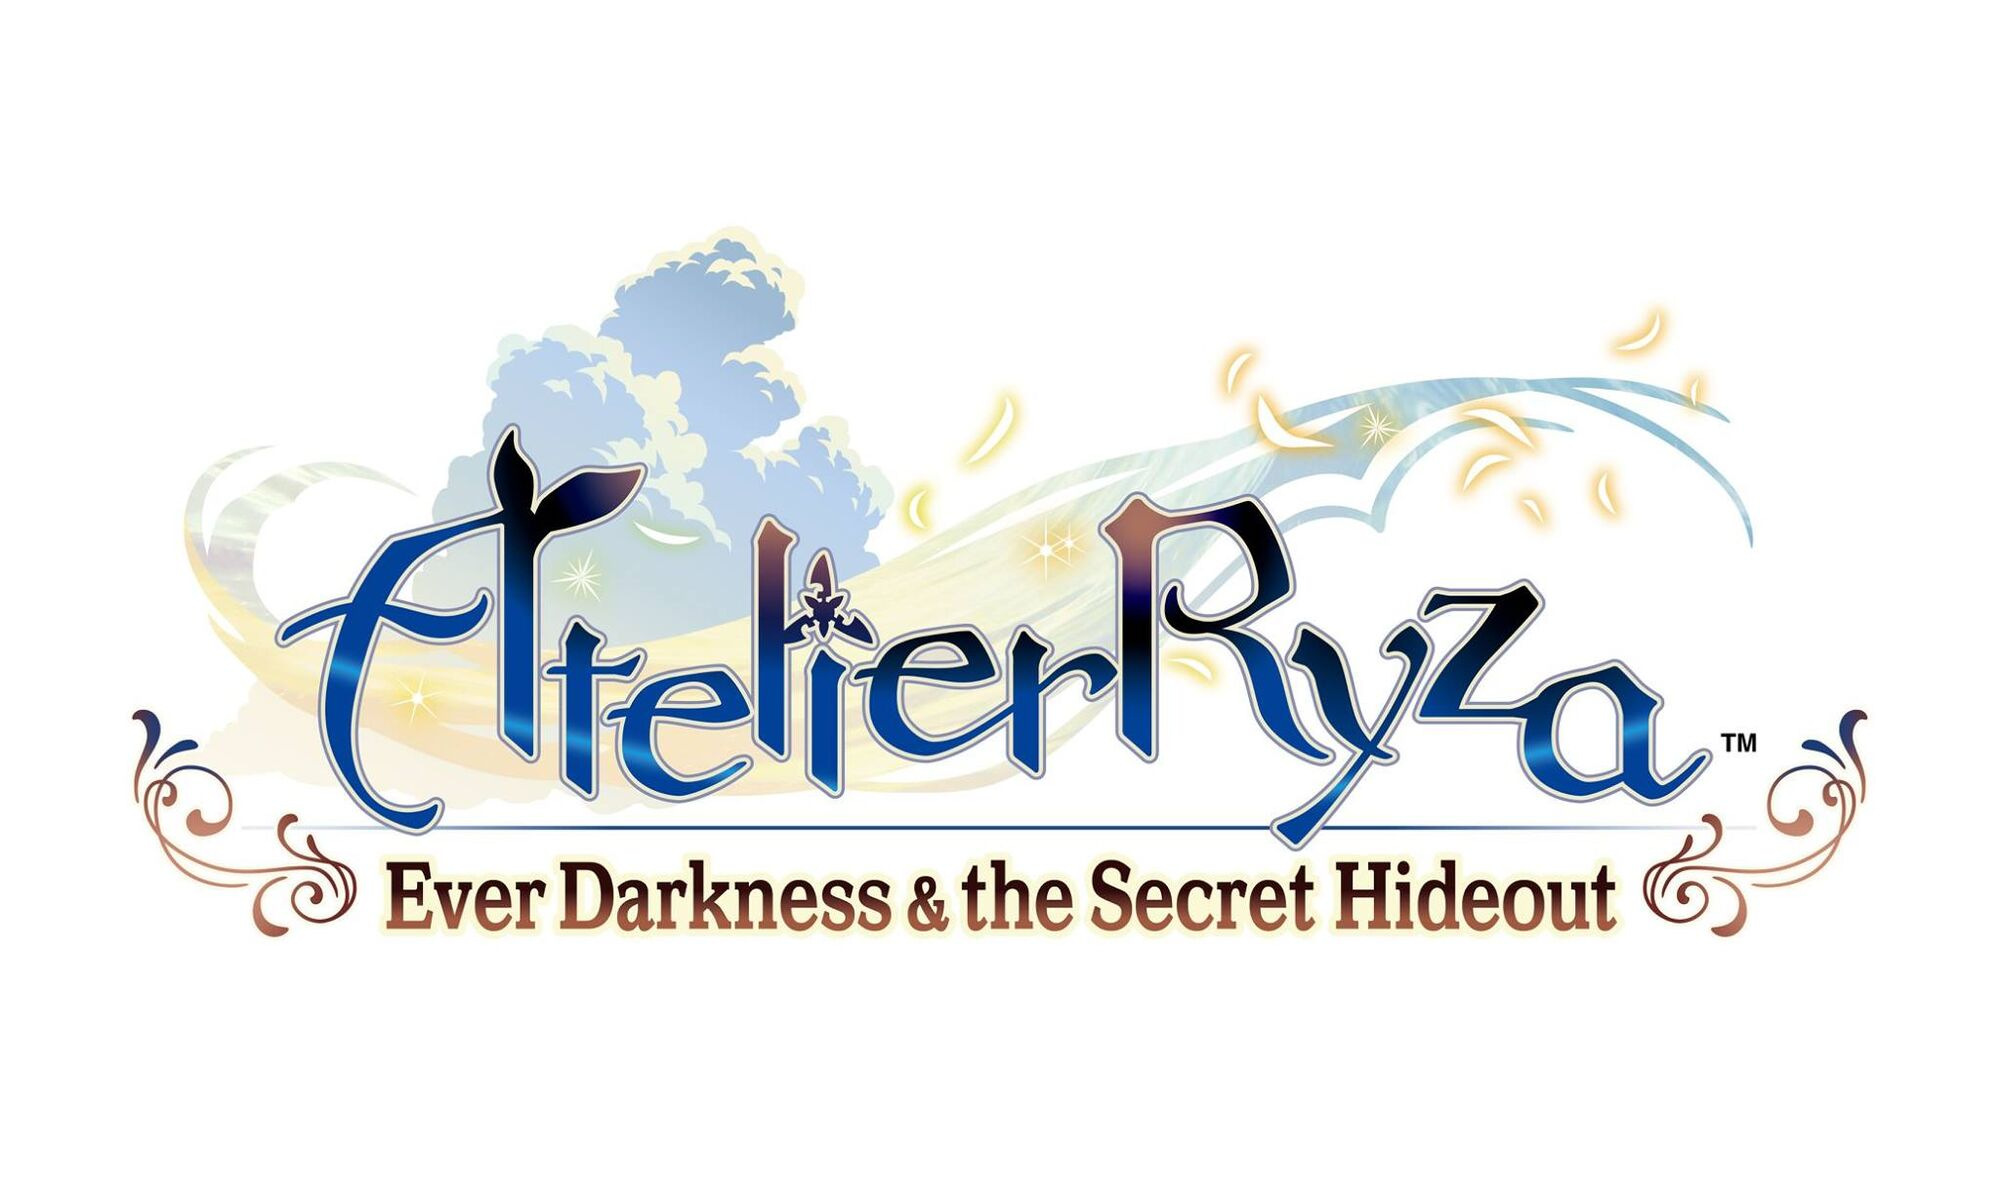 Atelier Ryza: Ever Darkness & the Secret Hideout - Crash on Launch - Issue Fix